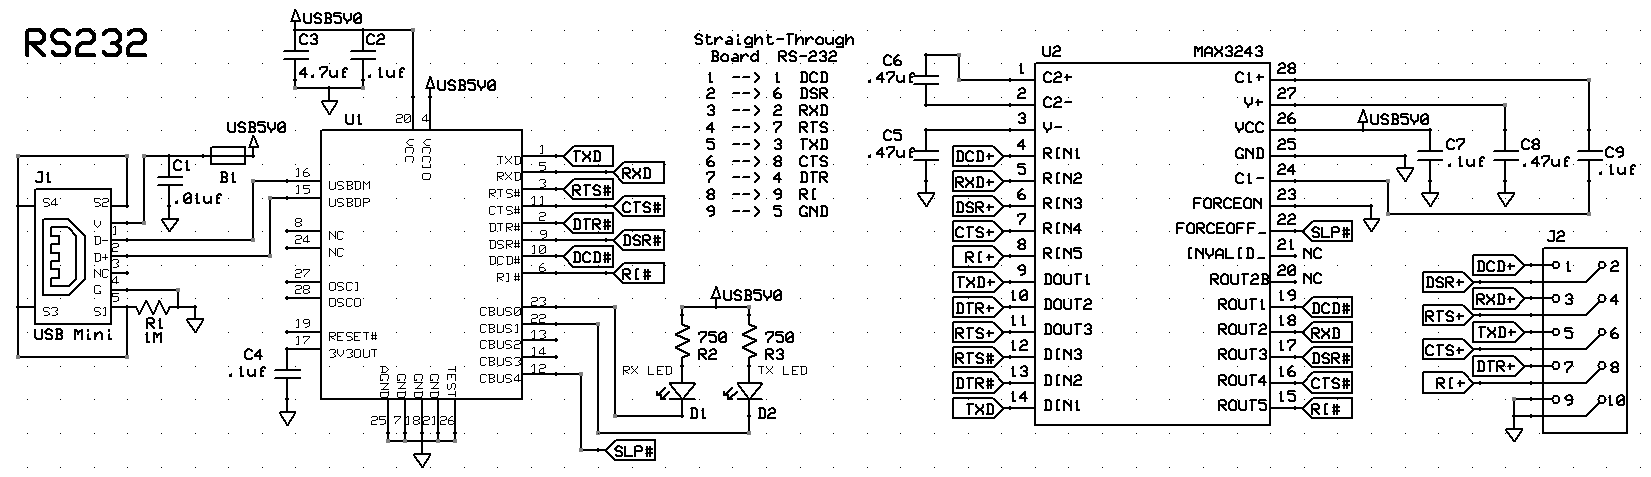 USB to RS232 Schematic